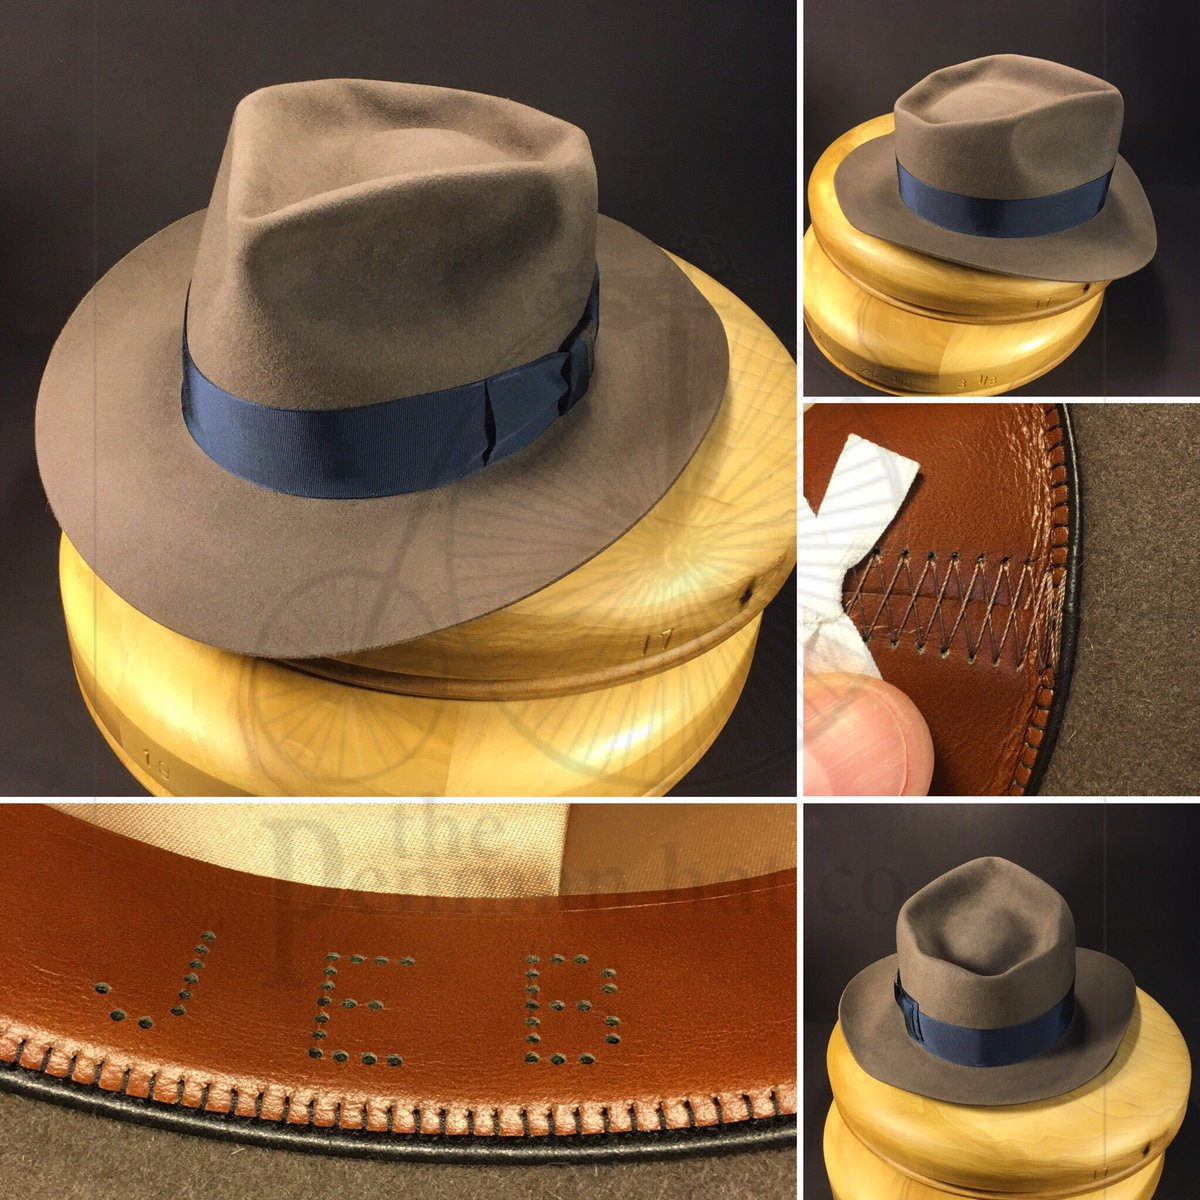 c24a66fea Penman Hat Company - @Penmanhats Twitter Profile and Downloader | Twipu